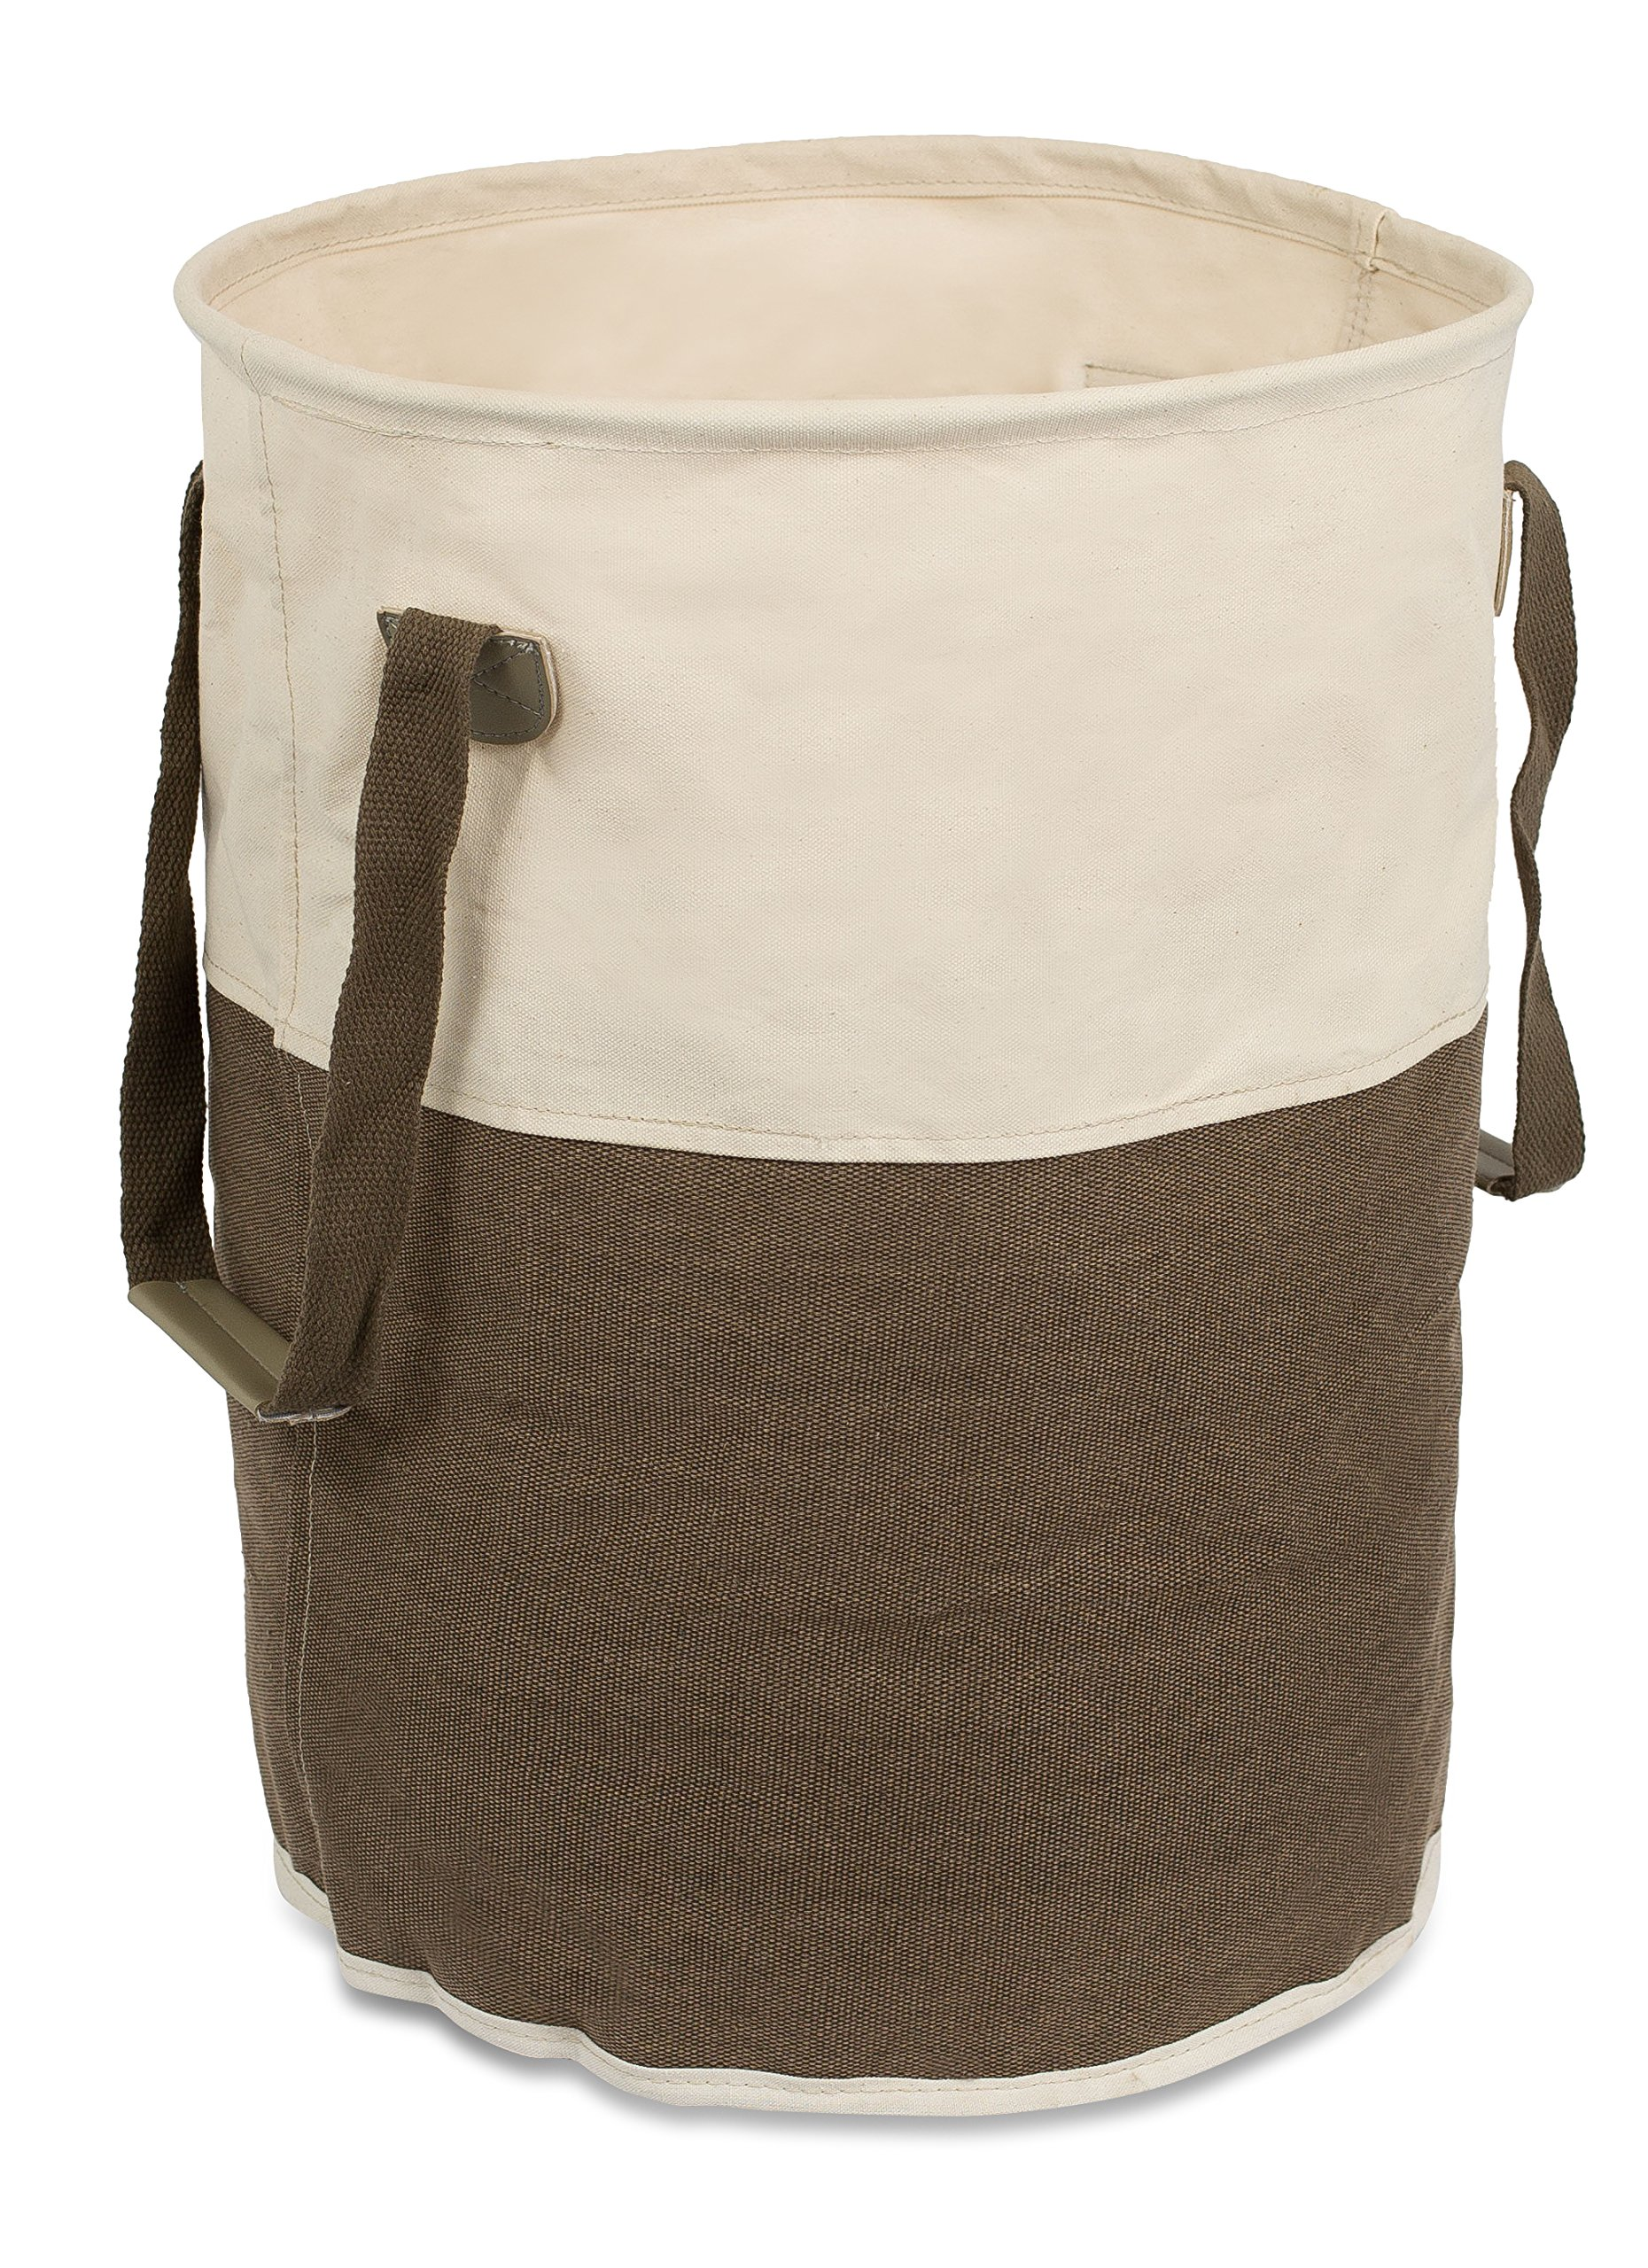 BIRDROCK HOME Round Cloth Laundry Hamper with